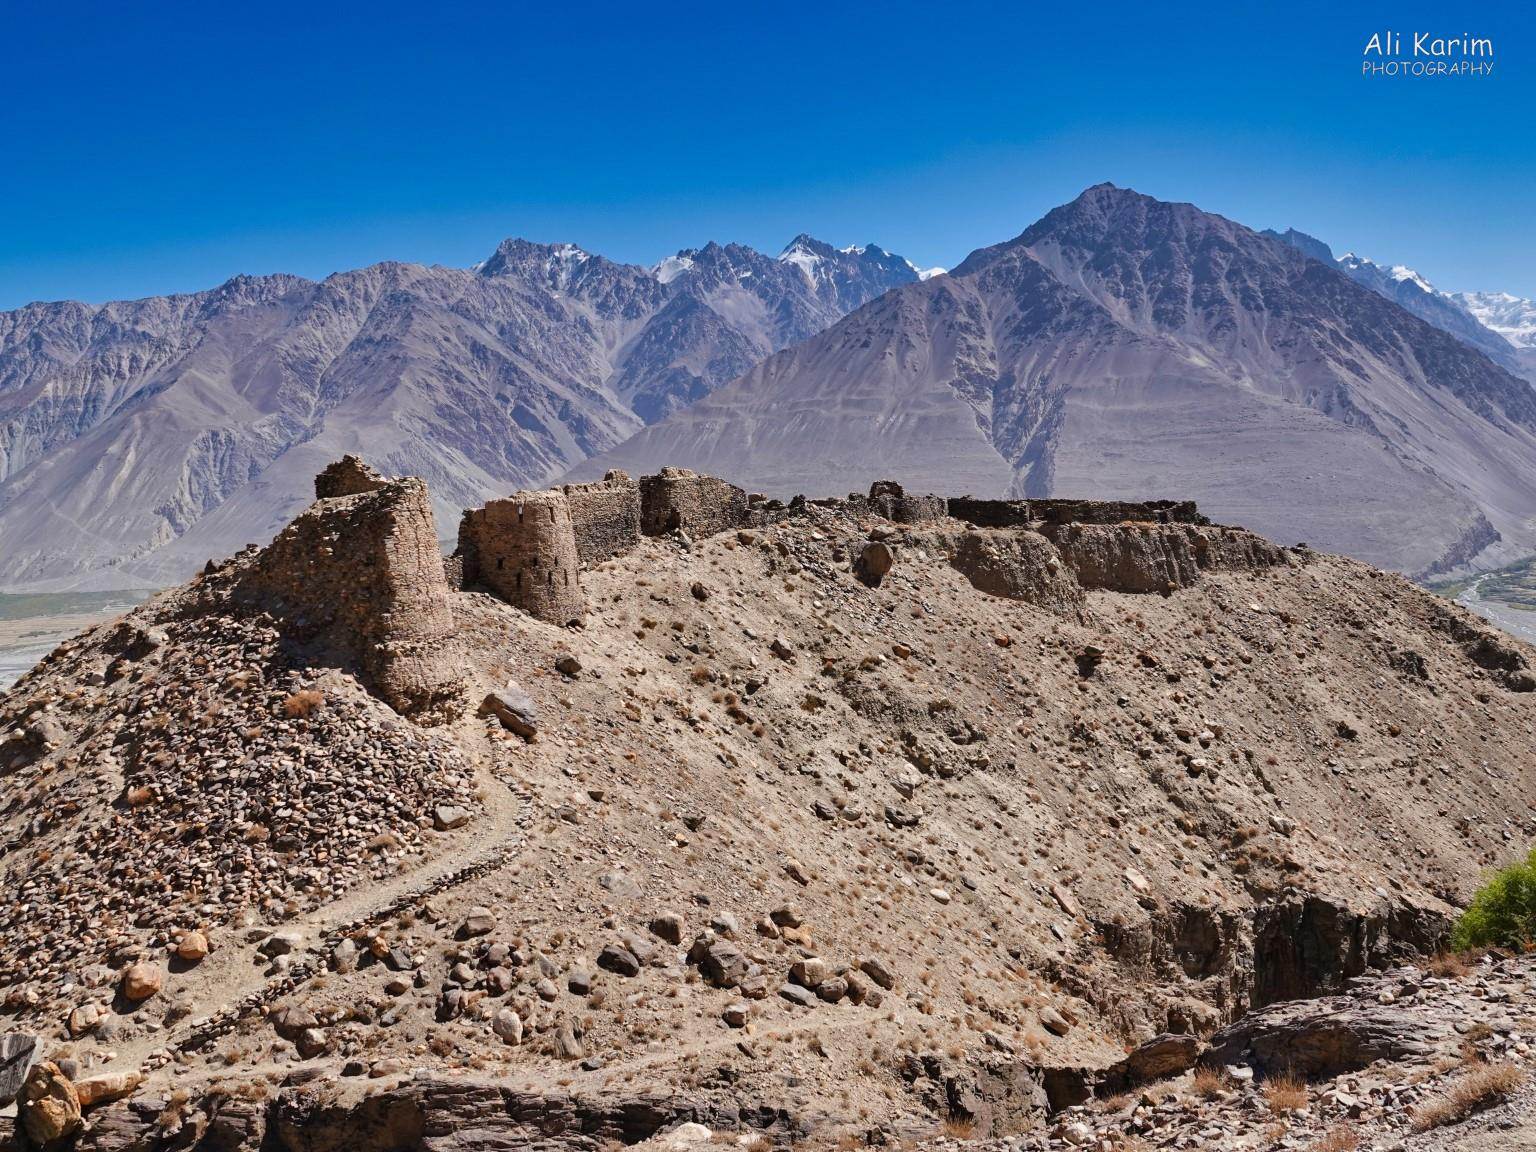 Langar, Bulunkul Tajikistan, Yamchun Fortress, built with stones, dating between 300-100BC. Locally referred to as Zamr-I Atisht Parasht, the fortress of the fire worshippers, meaning Zoroastrianism was strong in the Pamirs back then. A fire temple might have housed inside the fortress.